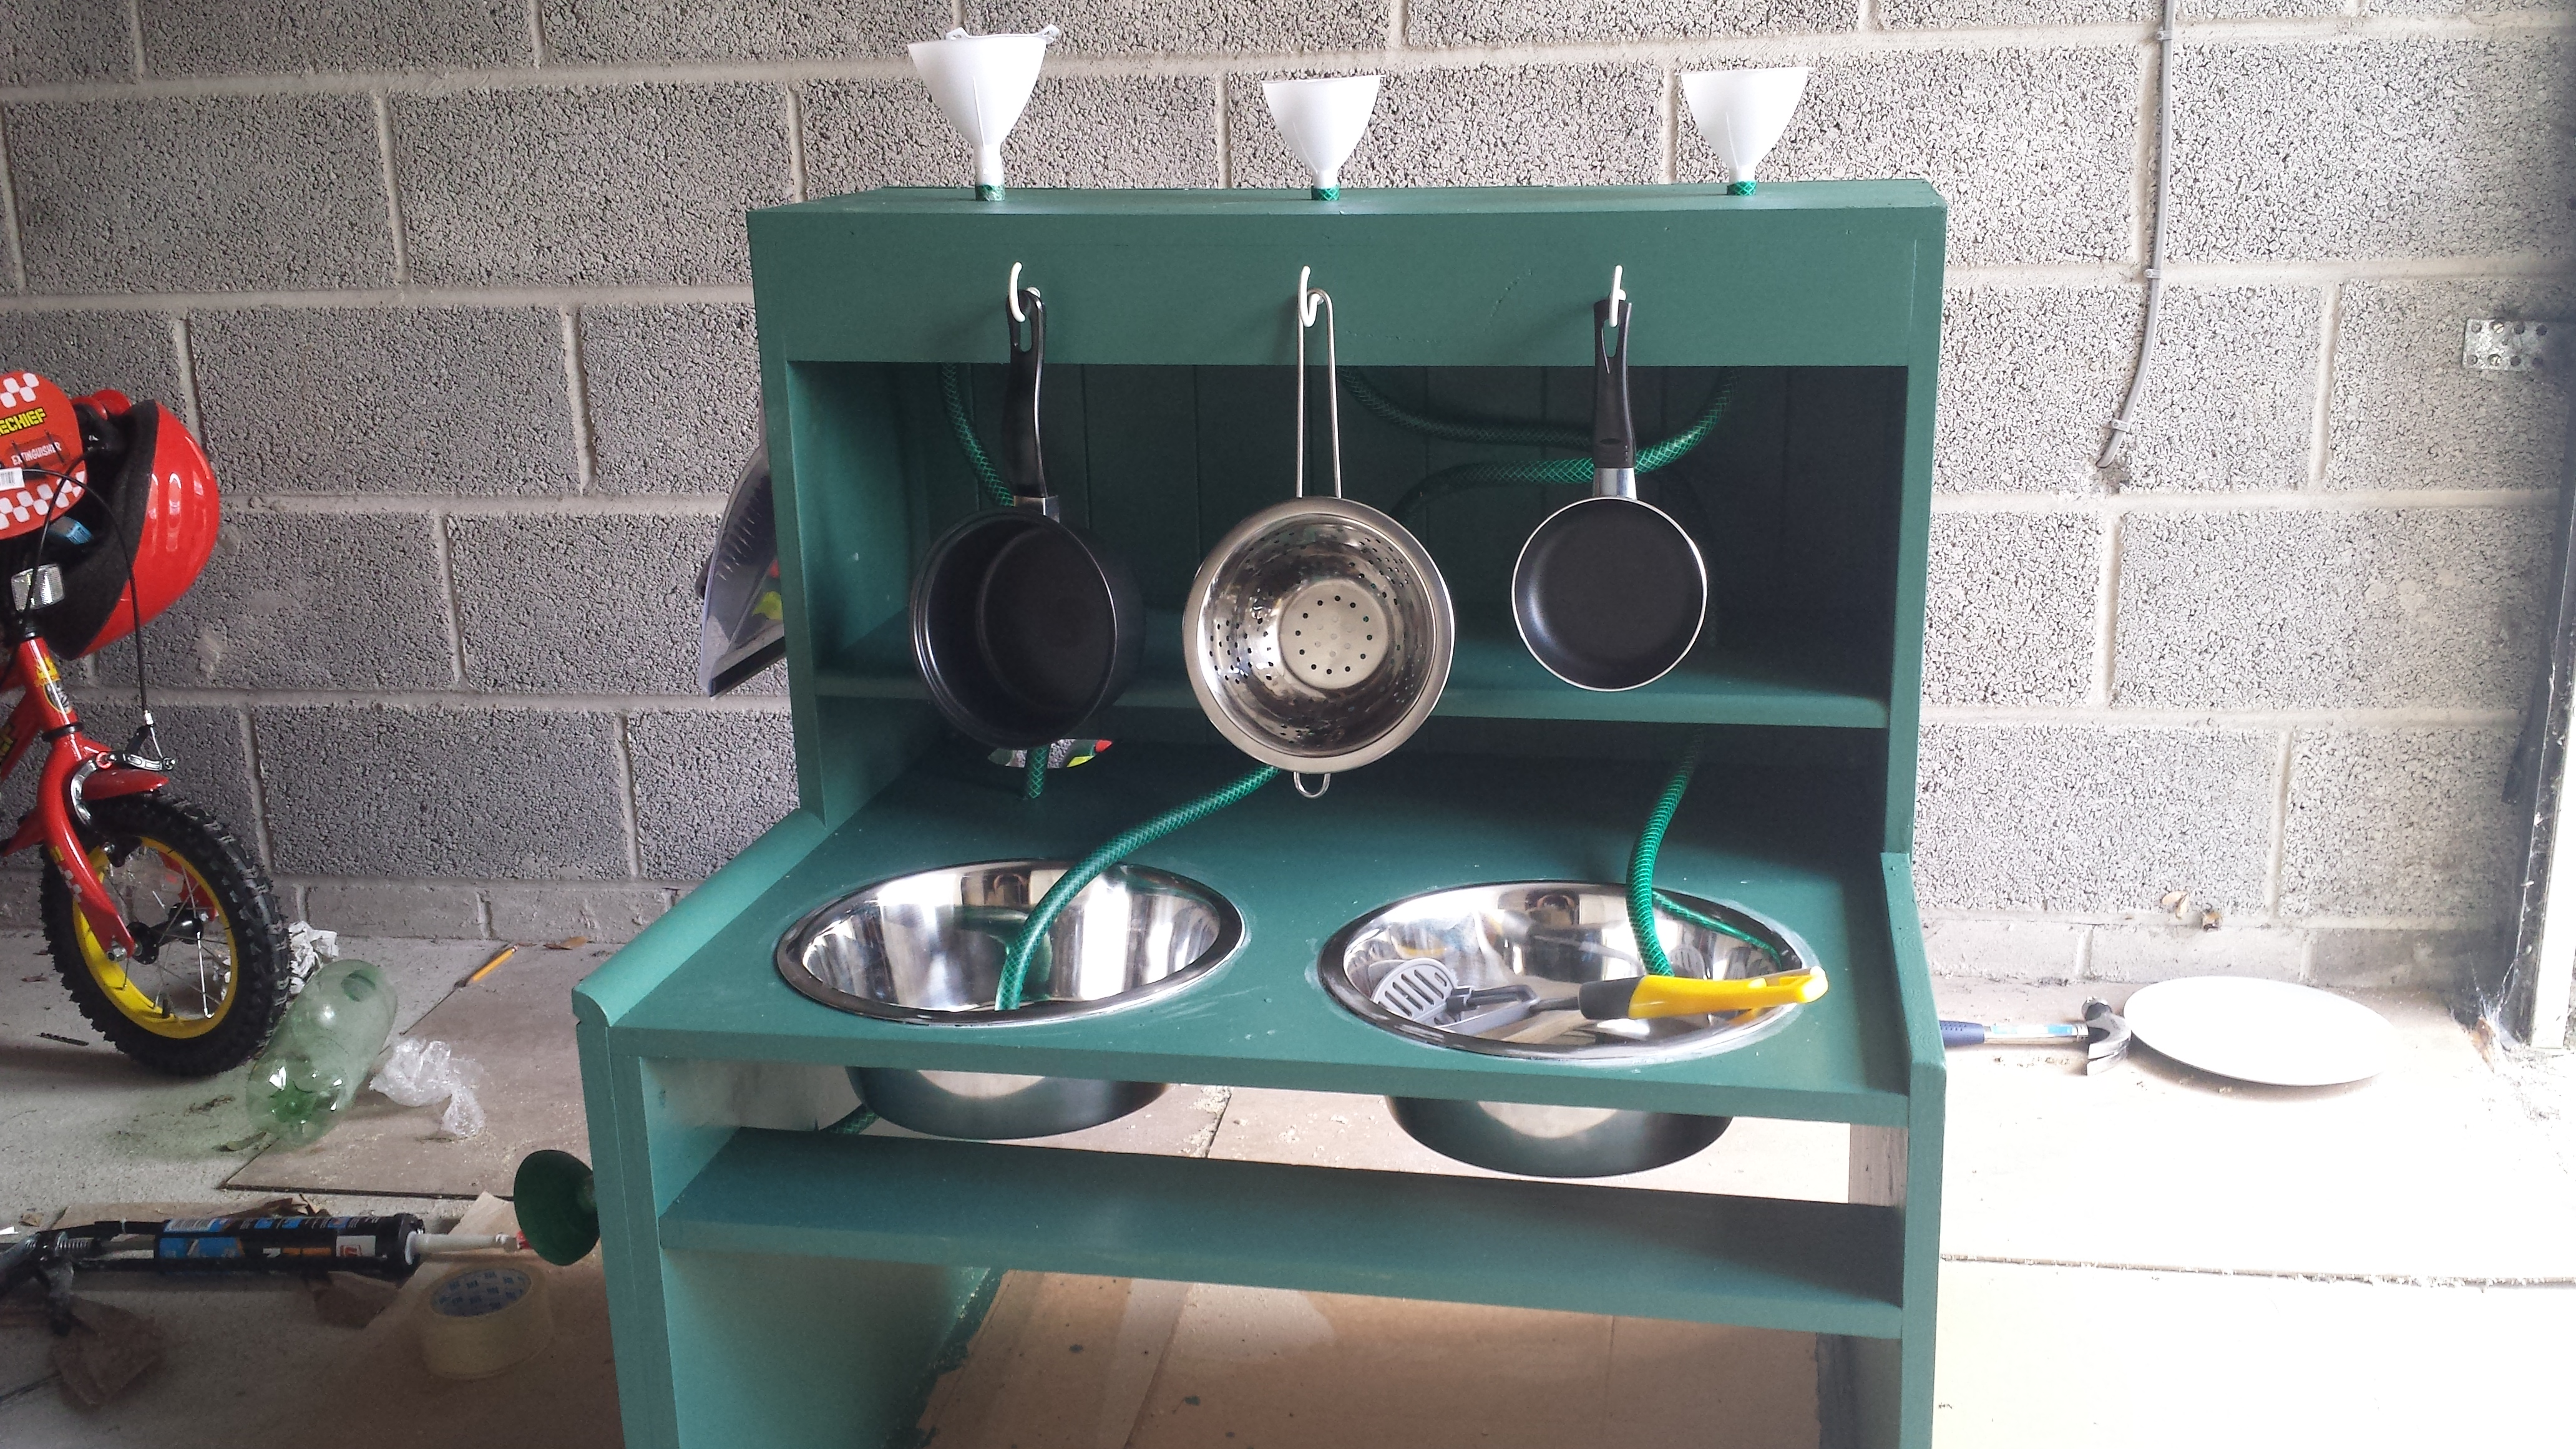 best mud kitchen items for outdoor play